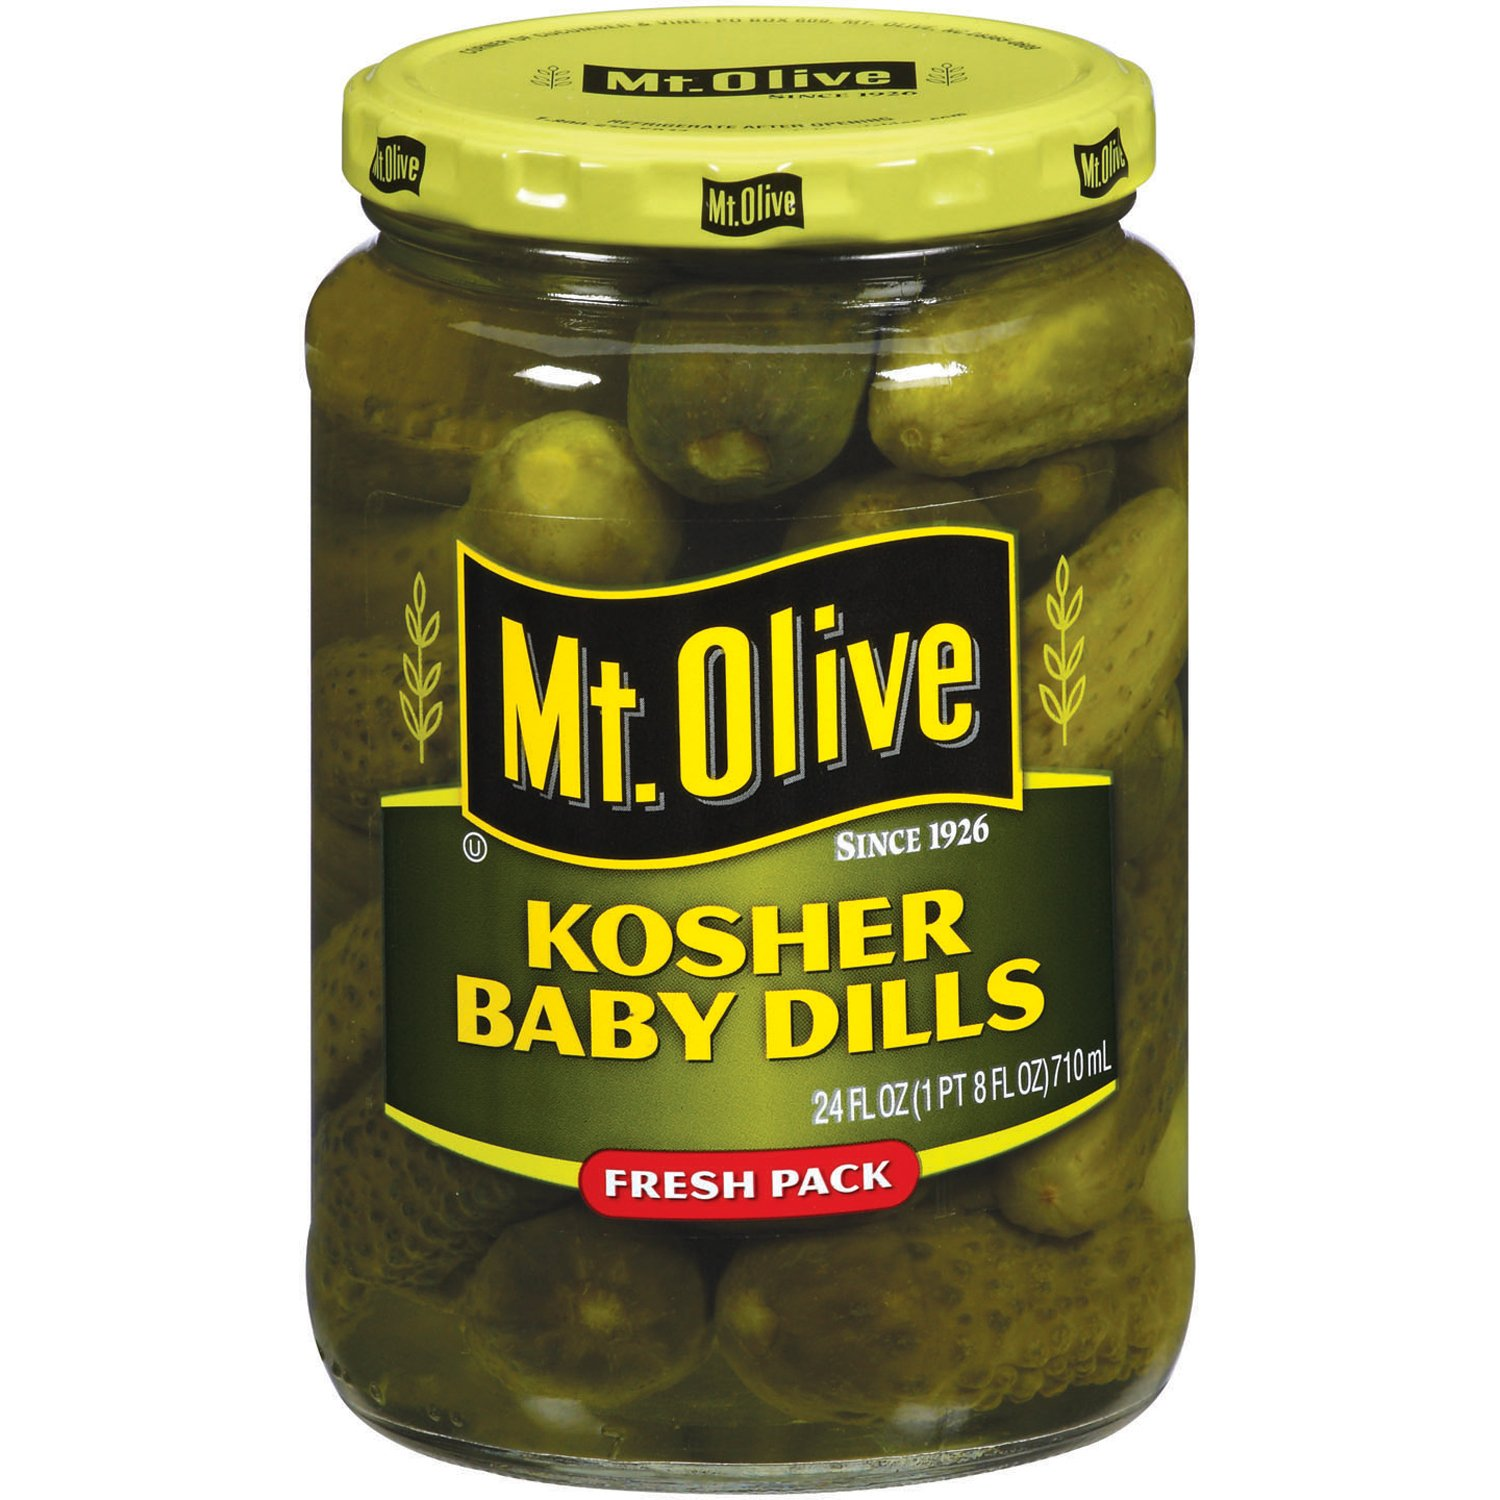 Amazon.com : MT. Olive Kosher Baby Dills Fresh Pack Jar, 24 oz ...